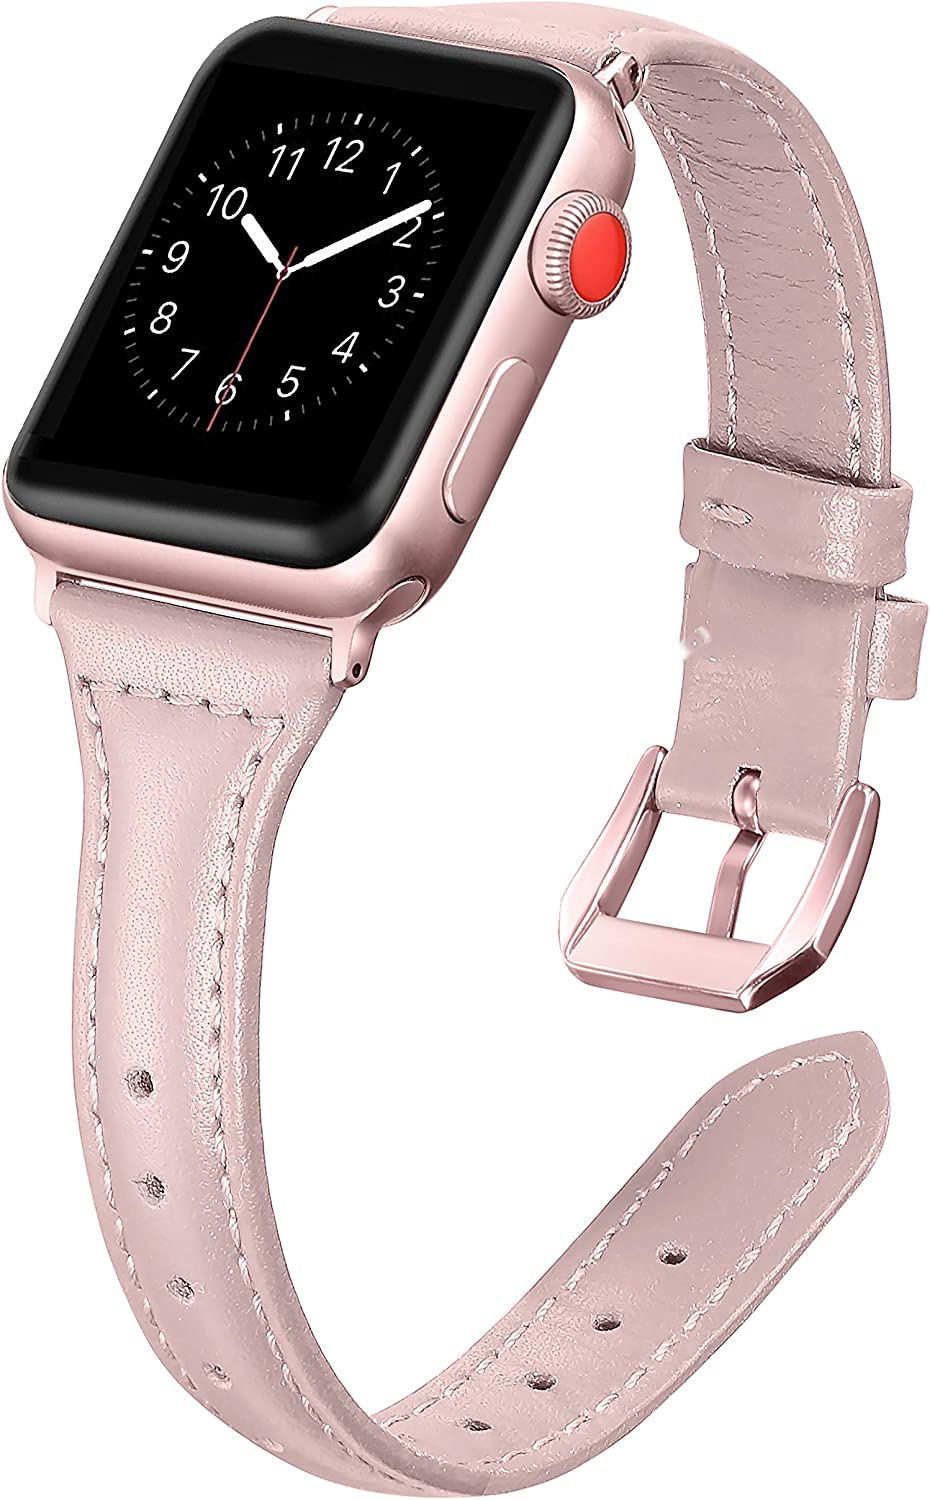 Secbolt Leather Bands Compatible Apple Watch Band 38mm 40mm Iwatch Series 6 5 4 3 2 1 SE Slim Replacement Wristband Strap Stainless Steel Buckle, Pink with Rose Gold Buckle